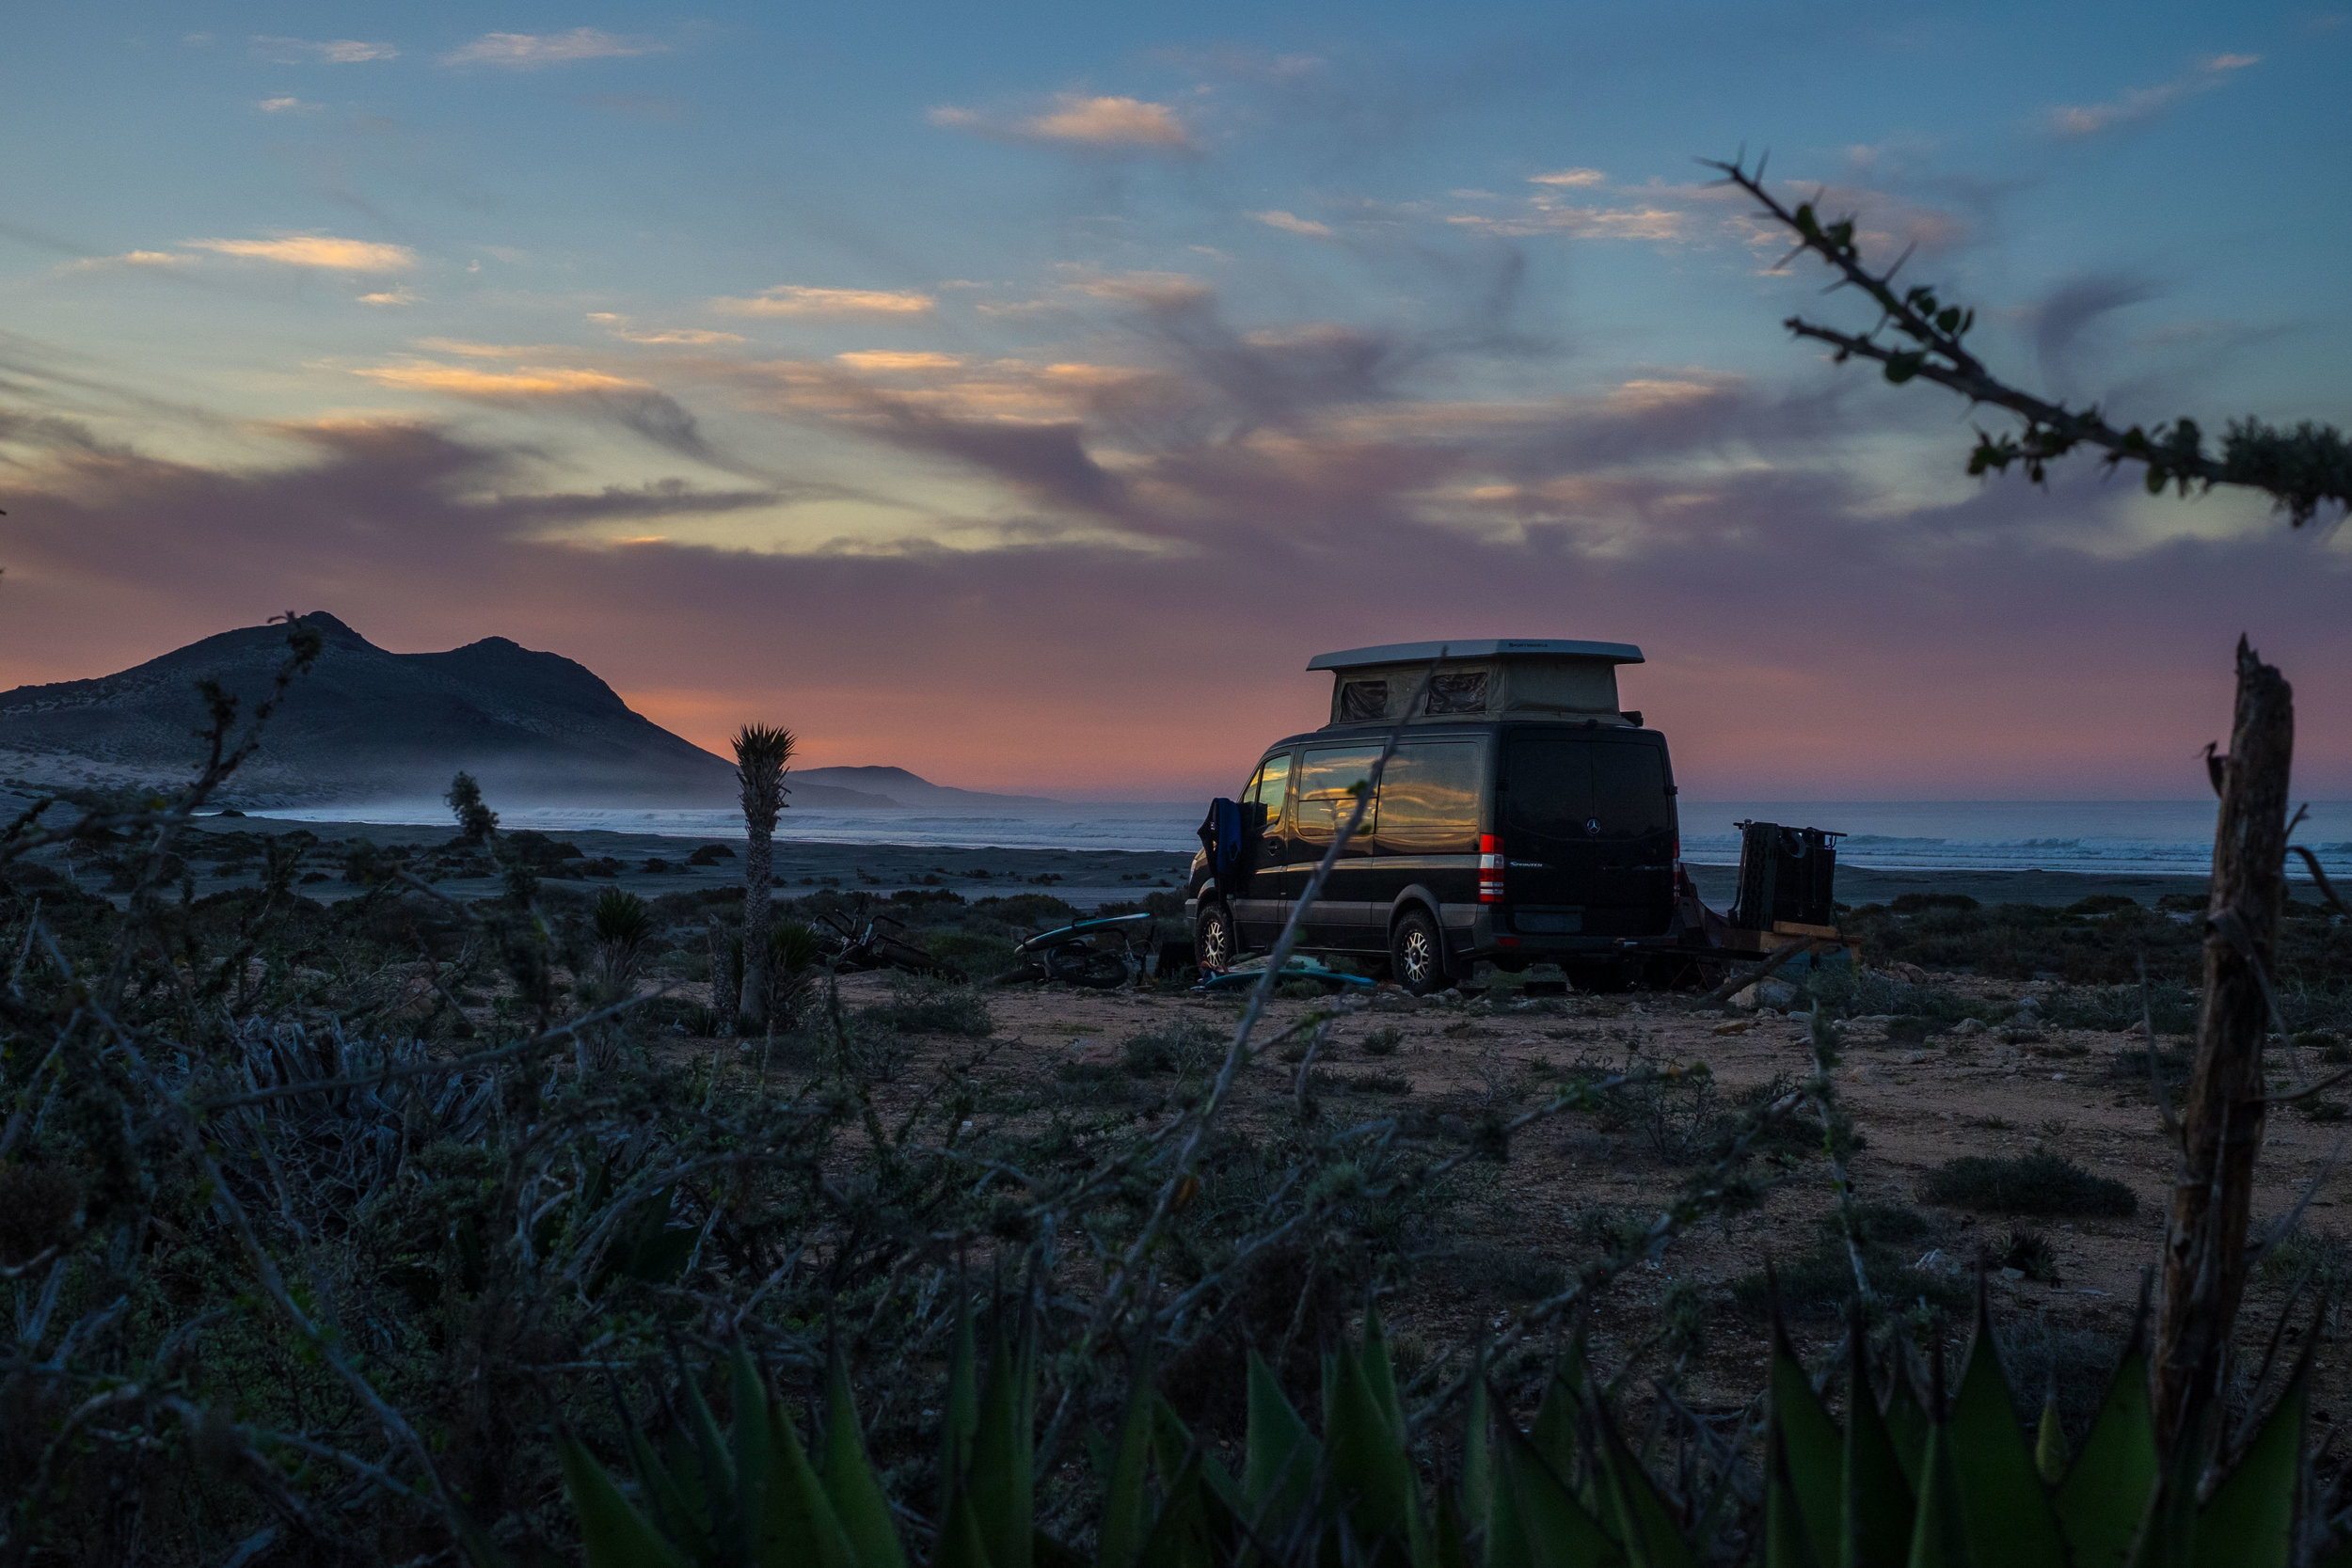 Not a Guide to Baja - January 2019, Baja Mexico - It seems like Baja is having a moment . . . a climax of things like bikepacking, van life, gps and the omnipresent information that social media and blogs provide. We don't know if it is a good or bad moment, but we think it would be interesting to take a snapshot. We'll get perspectives from all sorts of visitors, old timers who have come for decades and new comers arriving for the first time. How will we keep places like this feral? Or should we? Why? Who gets to decide?Content collected, and coming to a publication this summer . . . we'll keep you posted.